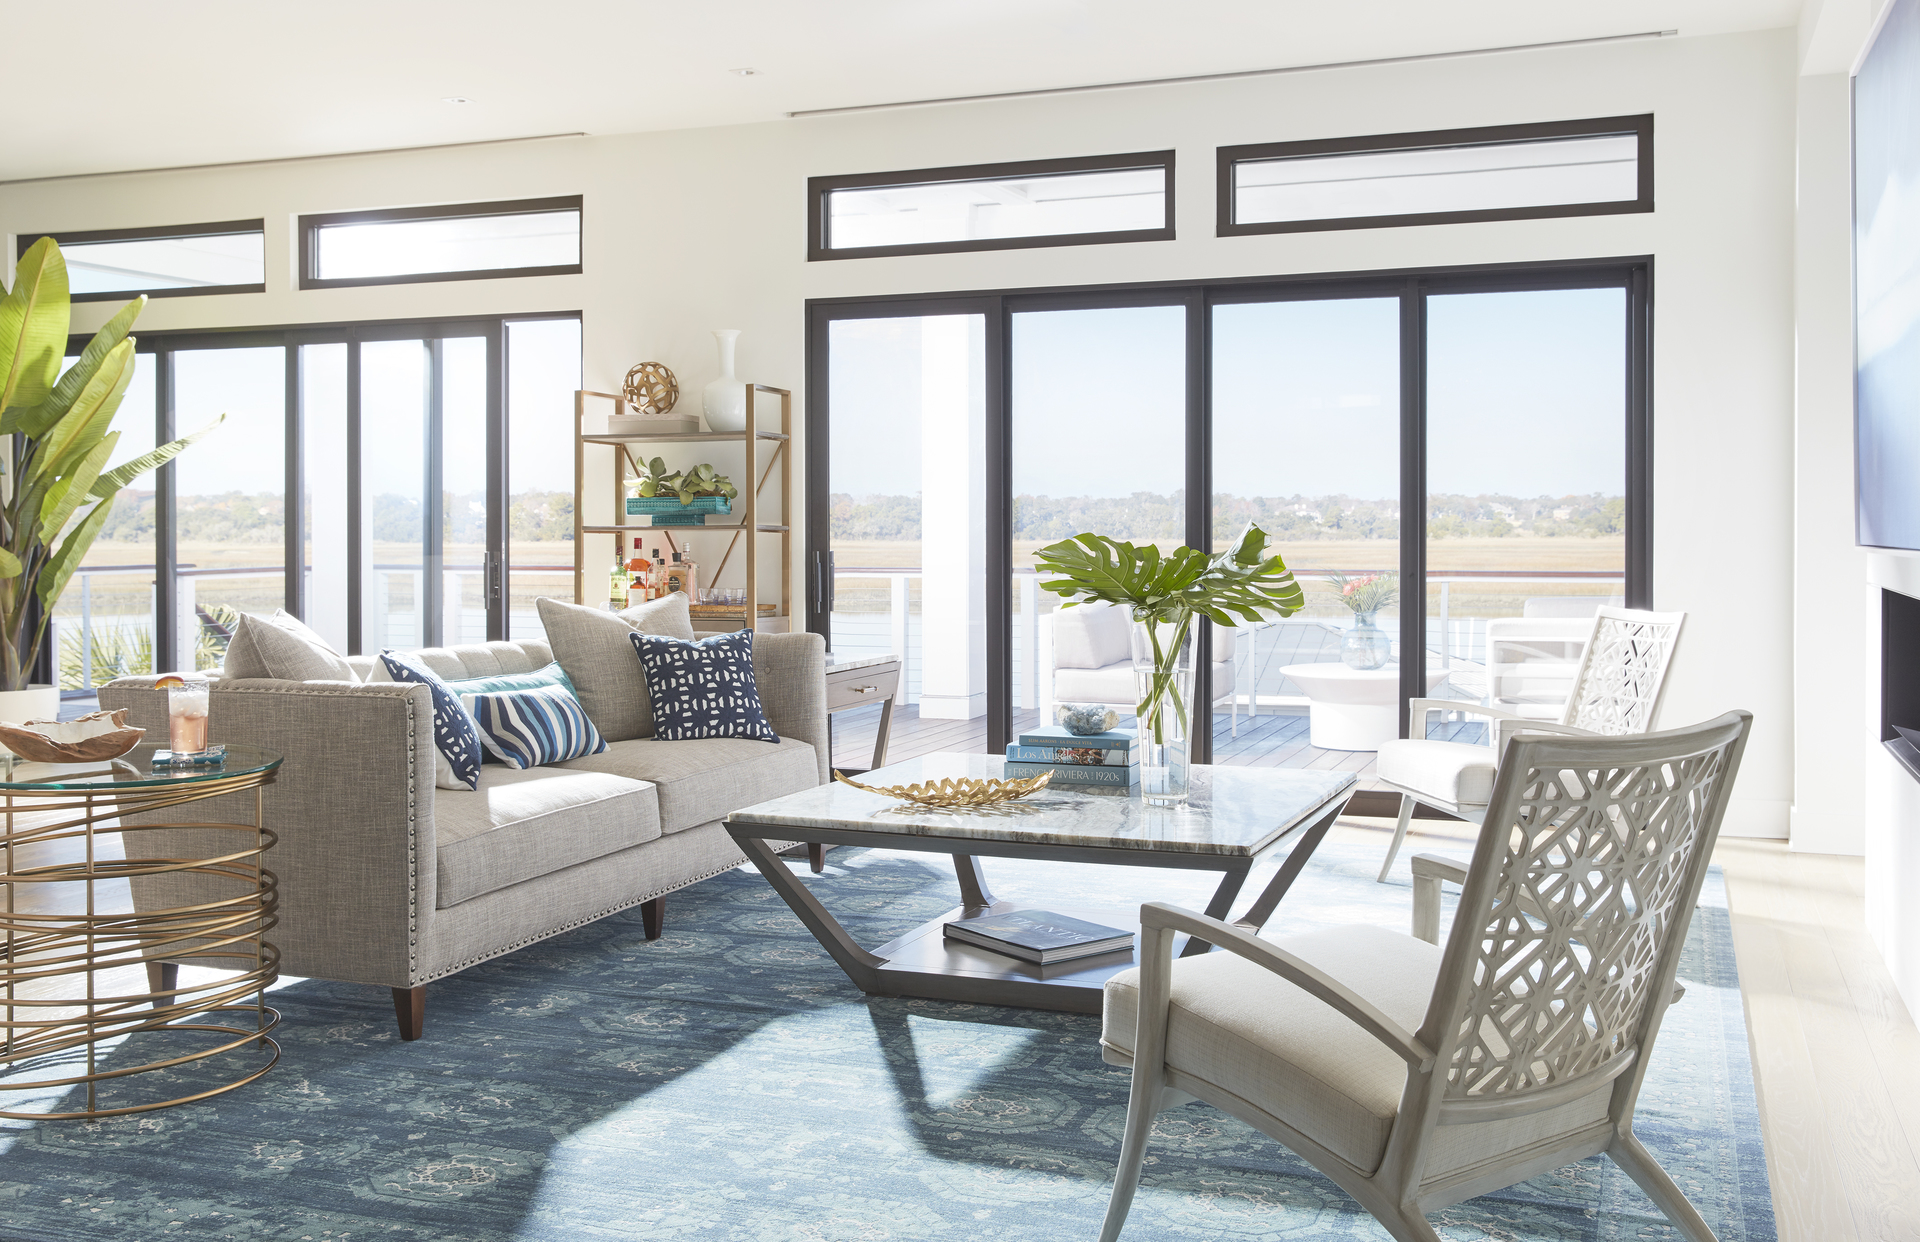 Coastal Living Oasis collection 0  collection 1  collection 2